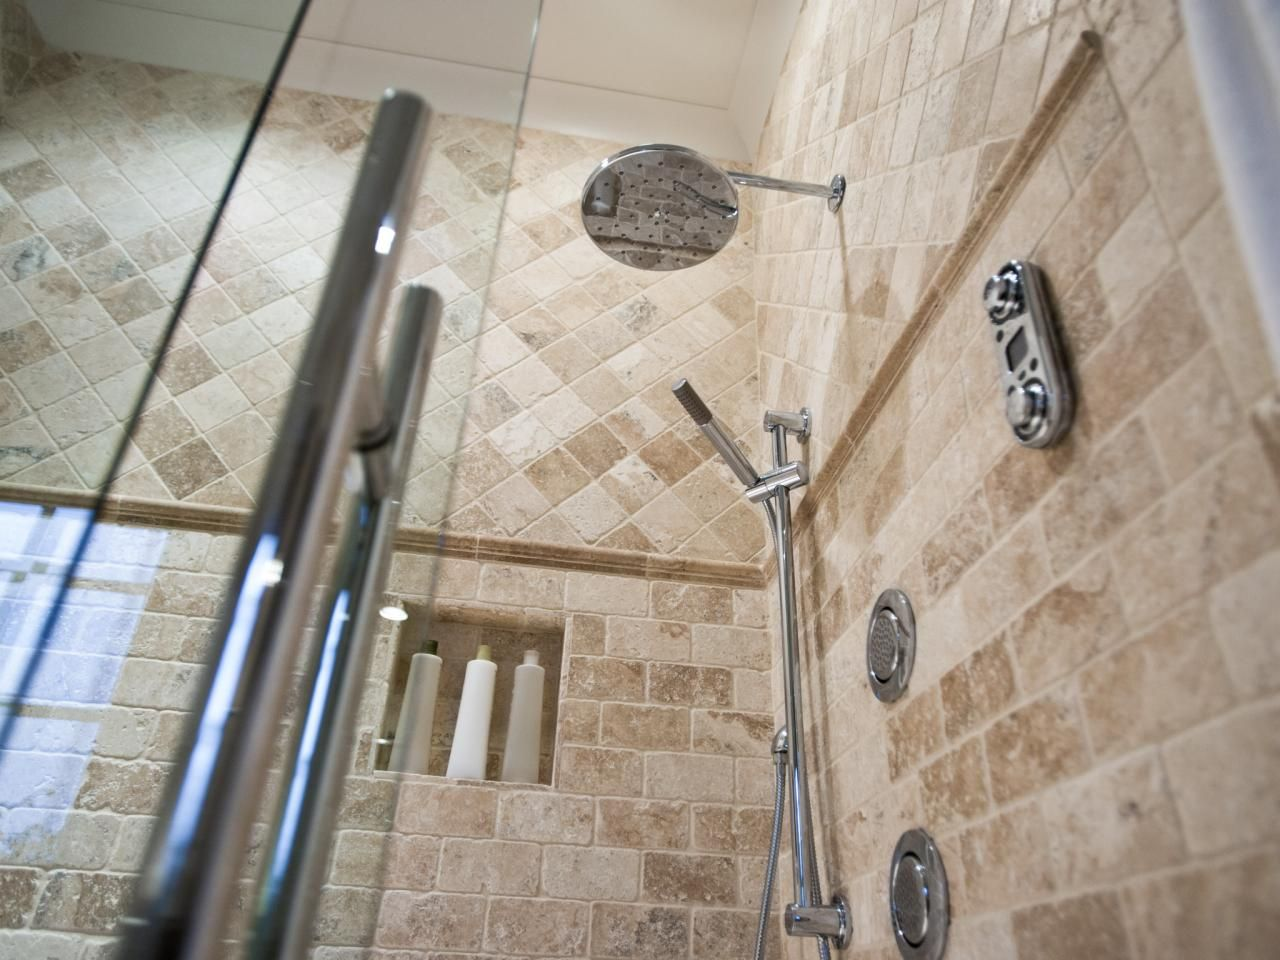 Moen Waterfall Shower Head   Master Bathroom Pictures From HGTV Smart Home  2014 On HGTV